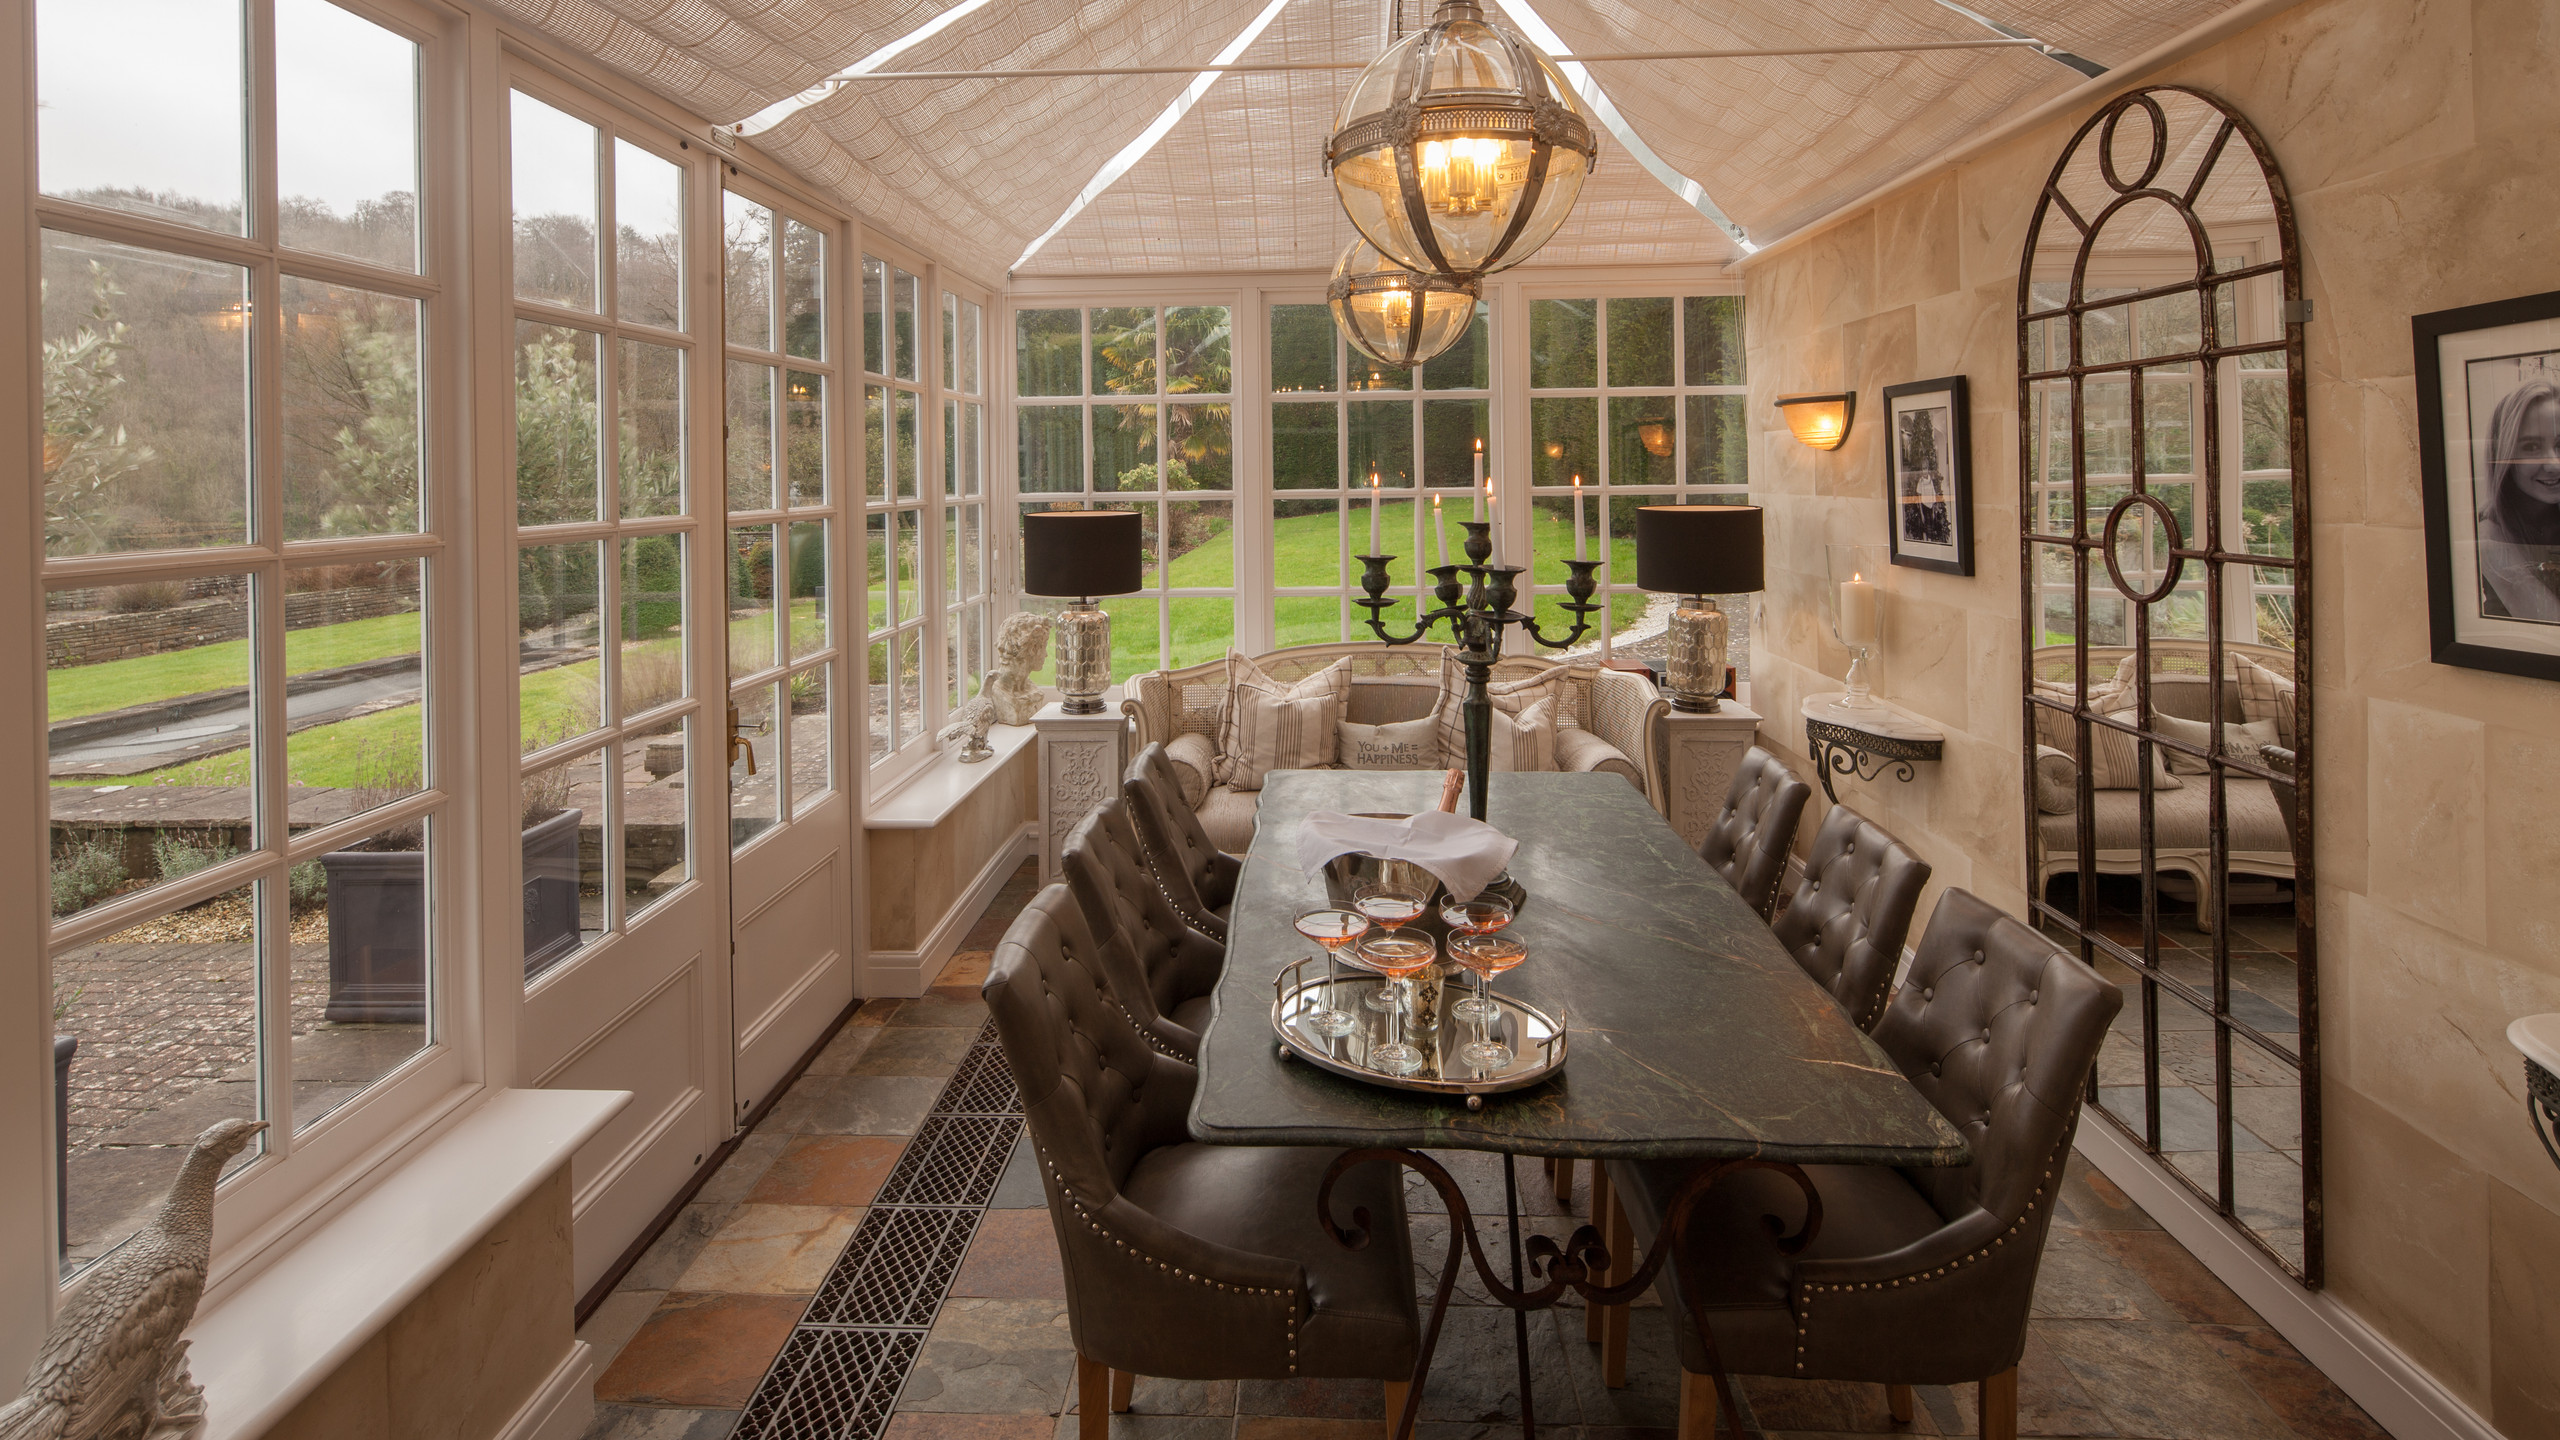 Conservatory, private venue hire South Wales